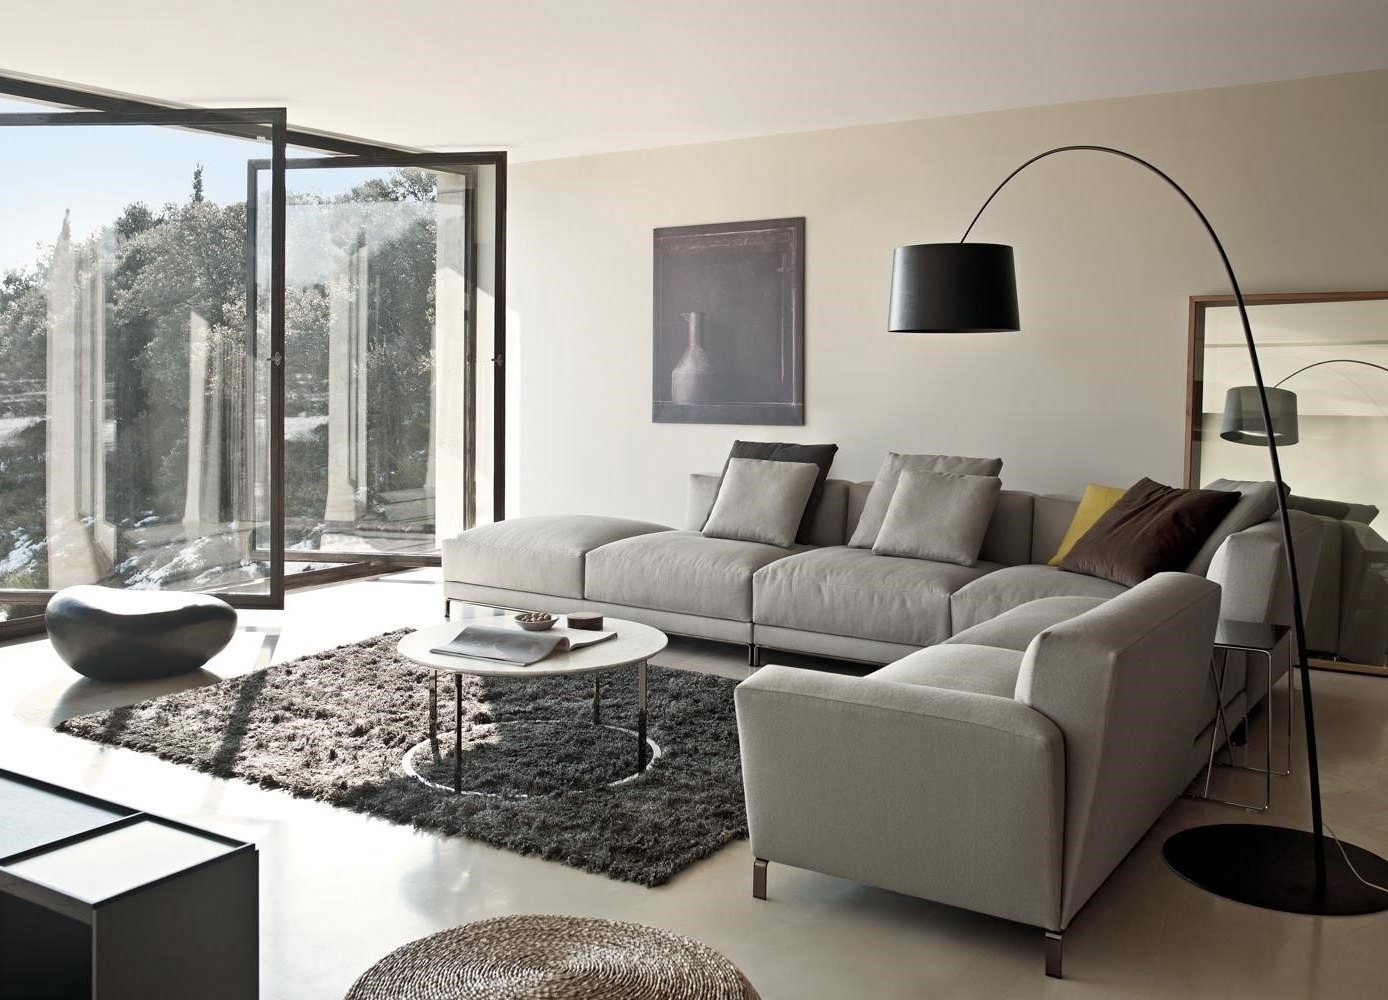 How To Decorate A Living Room With A Sectional Couch Sectional Regarding Most Popular Sectional Sofas Decorating (View 6 of 20)